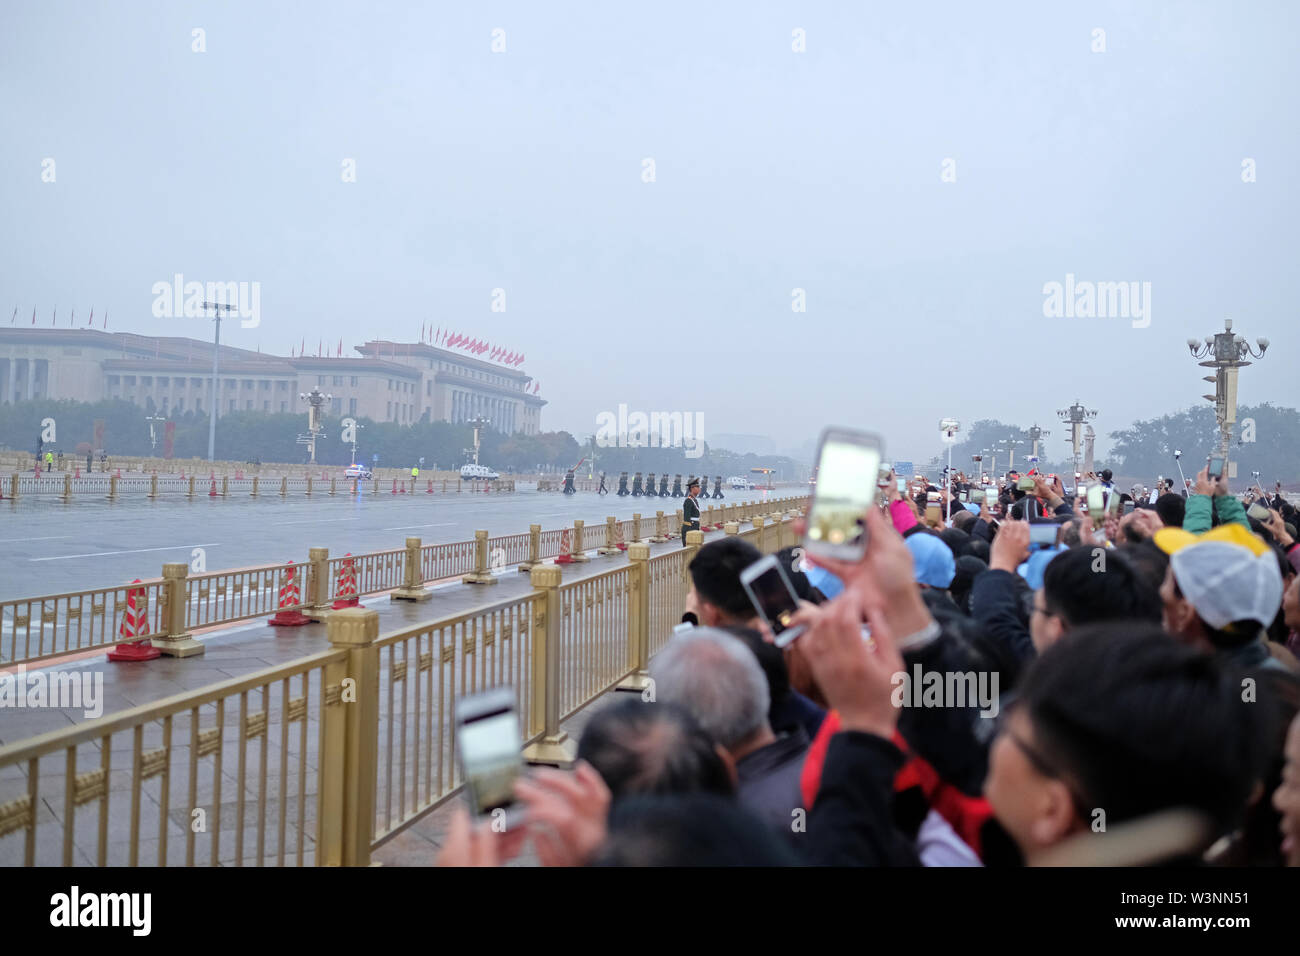 lots of people with cameras and cellphone outside of the forbidden city in beijing - Stock Image